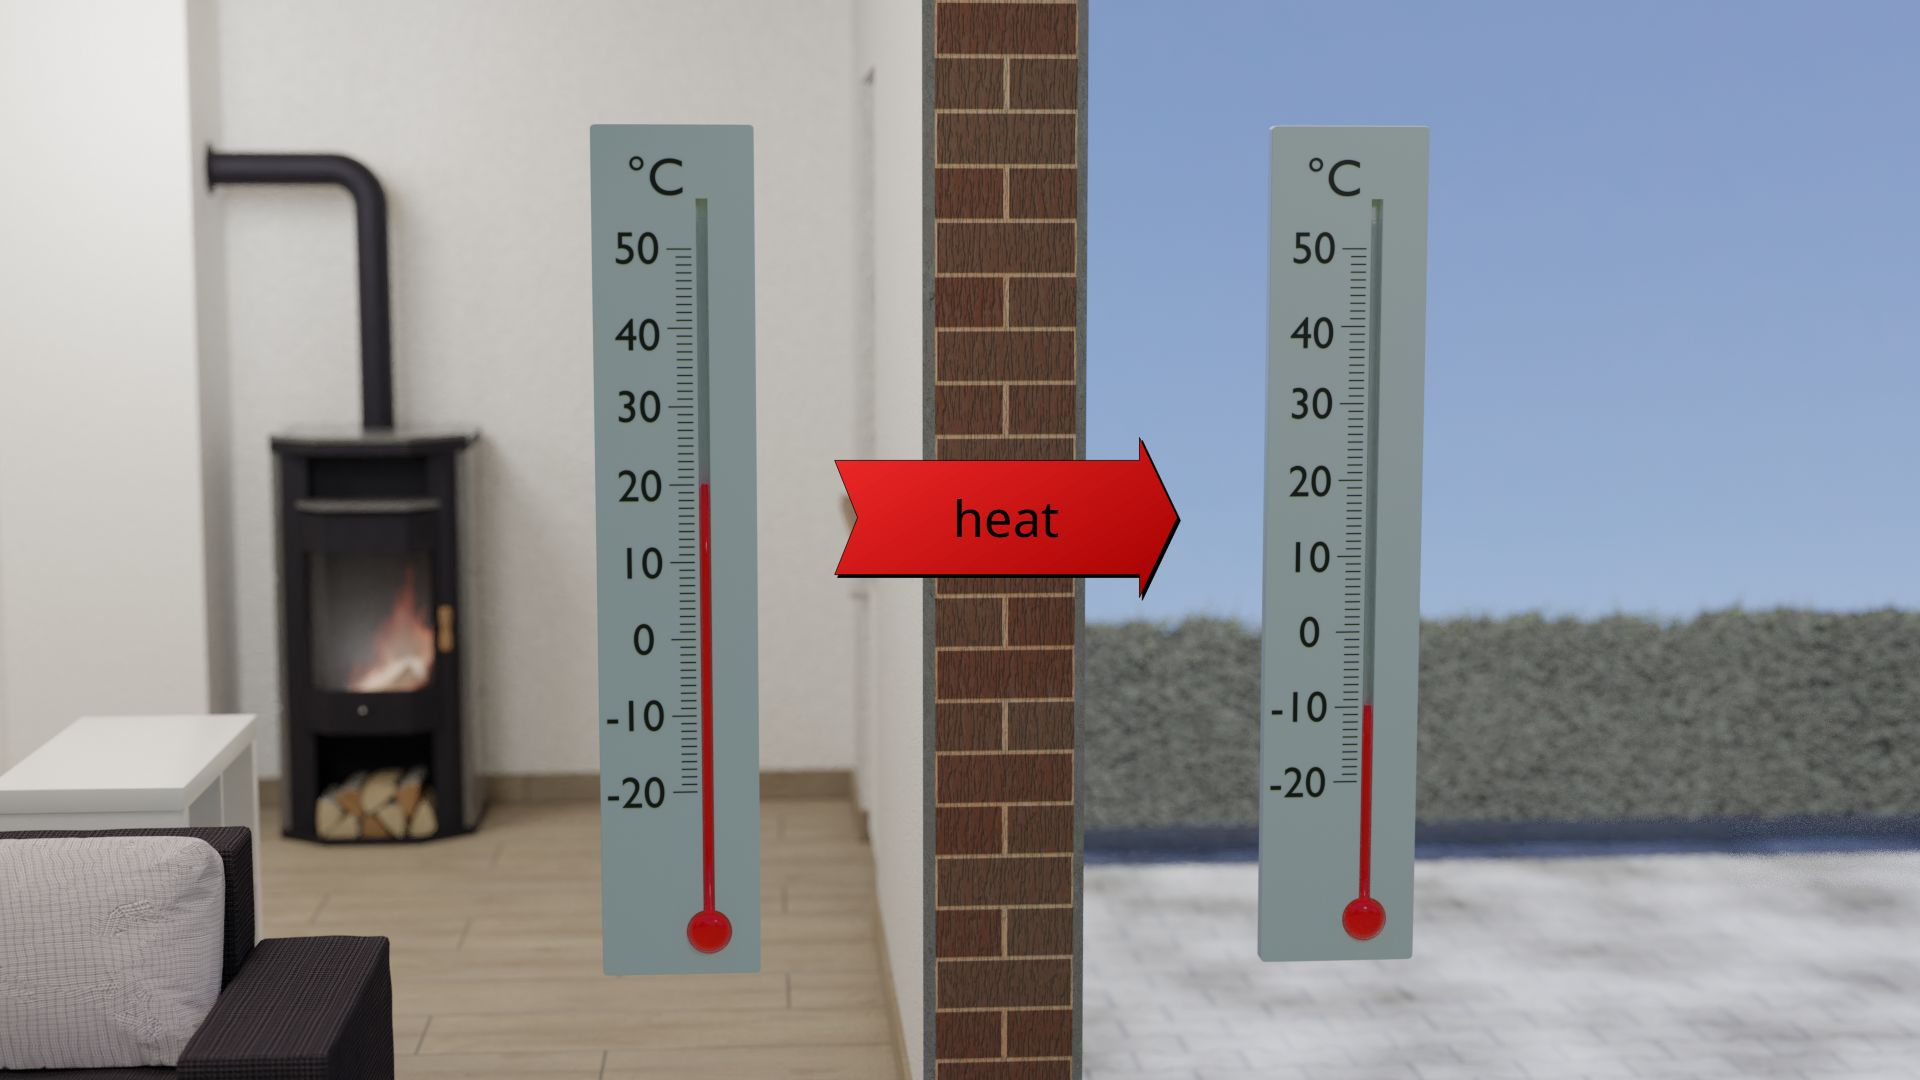 Thermal conduction through a house wall